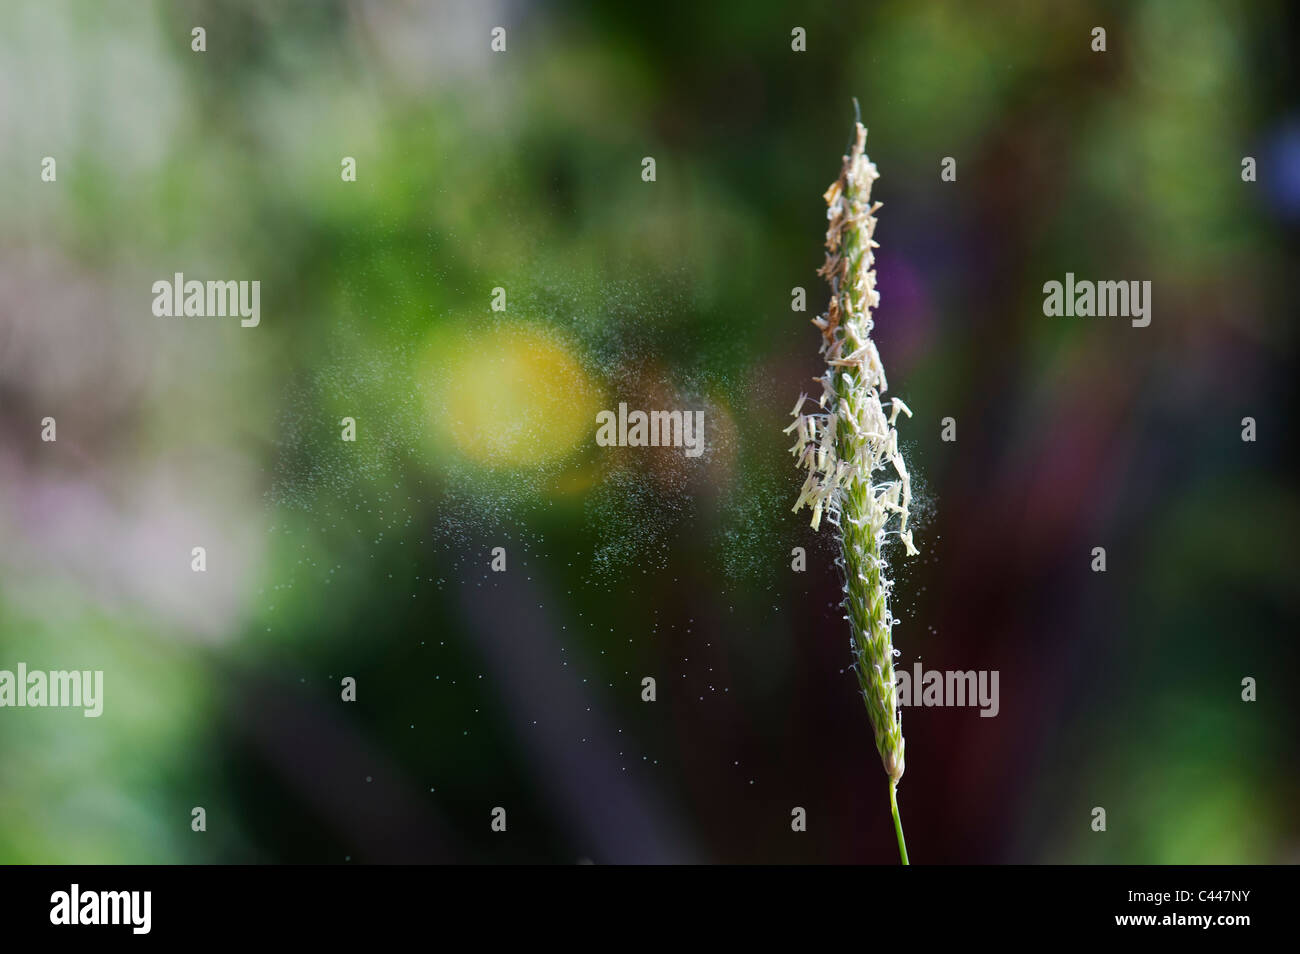 Pollen being released from grass - Stock Image